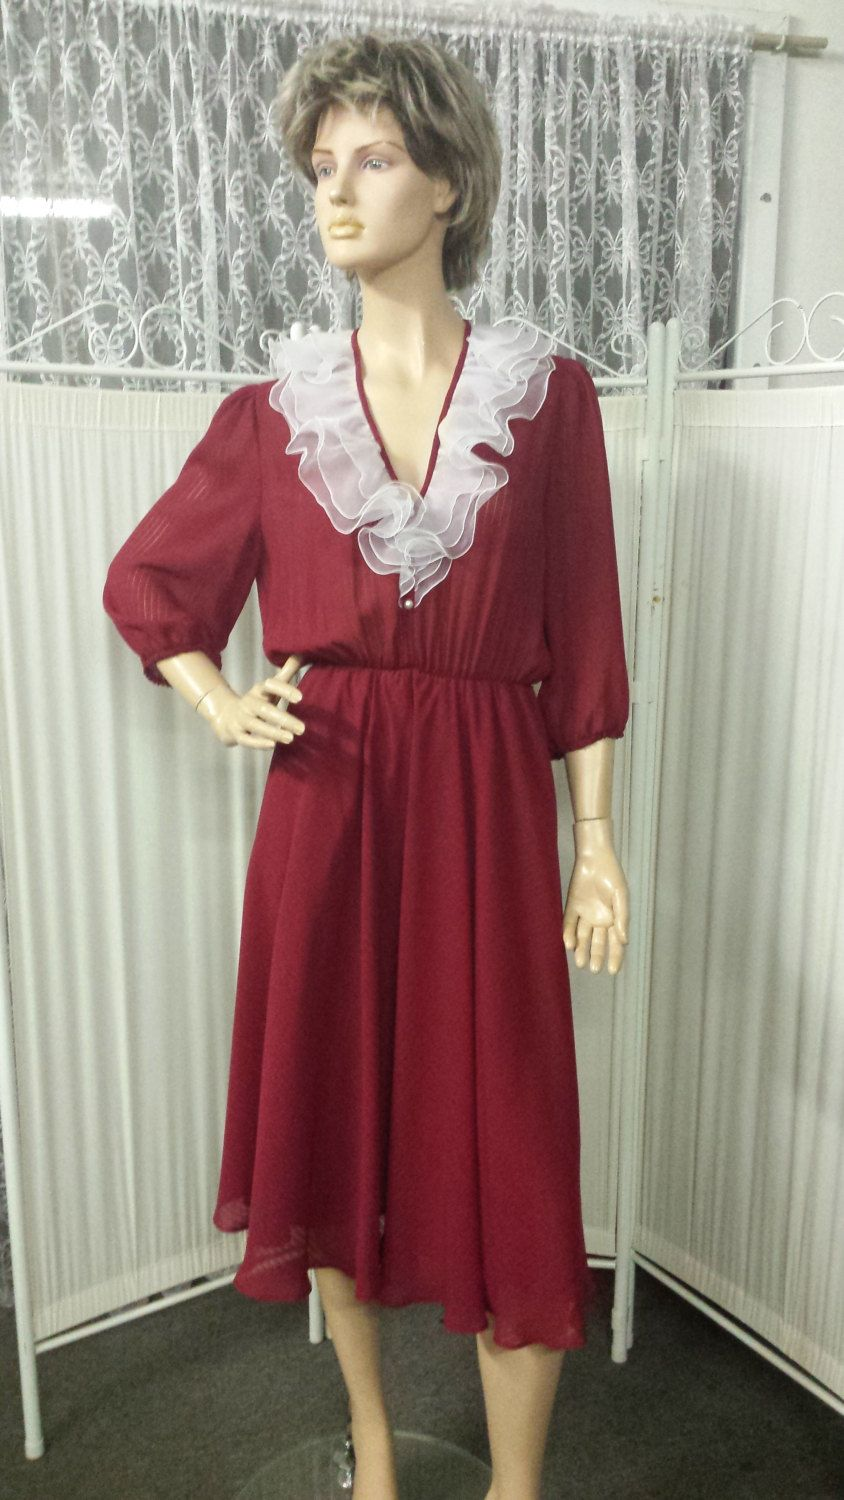 Vintage Red Chiffon Cocktail Dress Elegant Chic Event Wear by GenevieveEventWear on Etsy